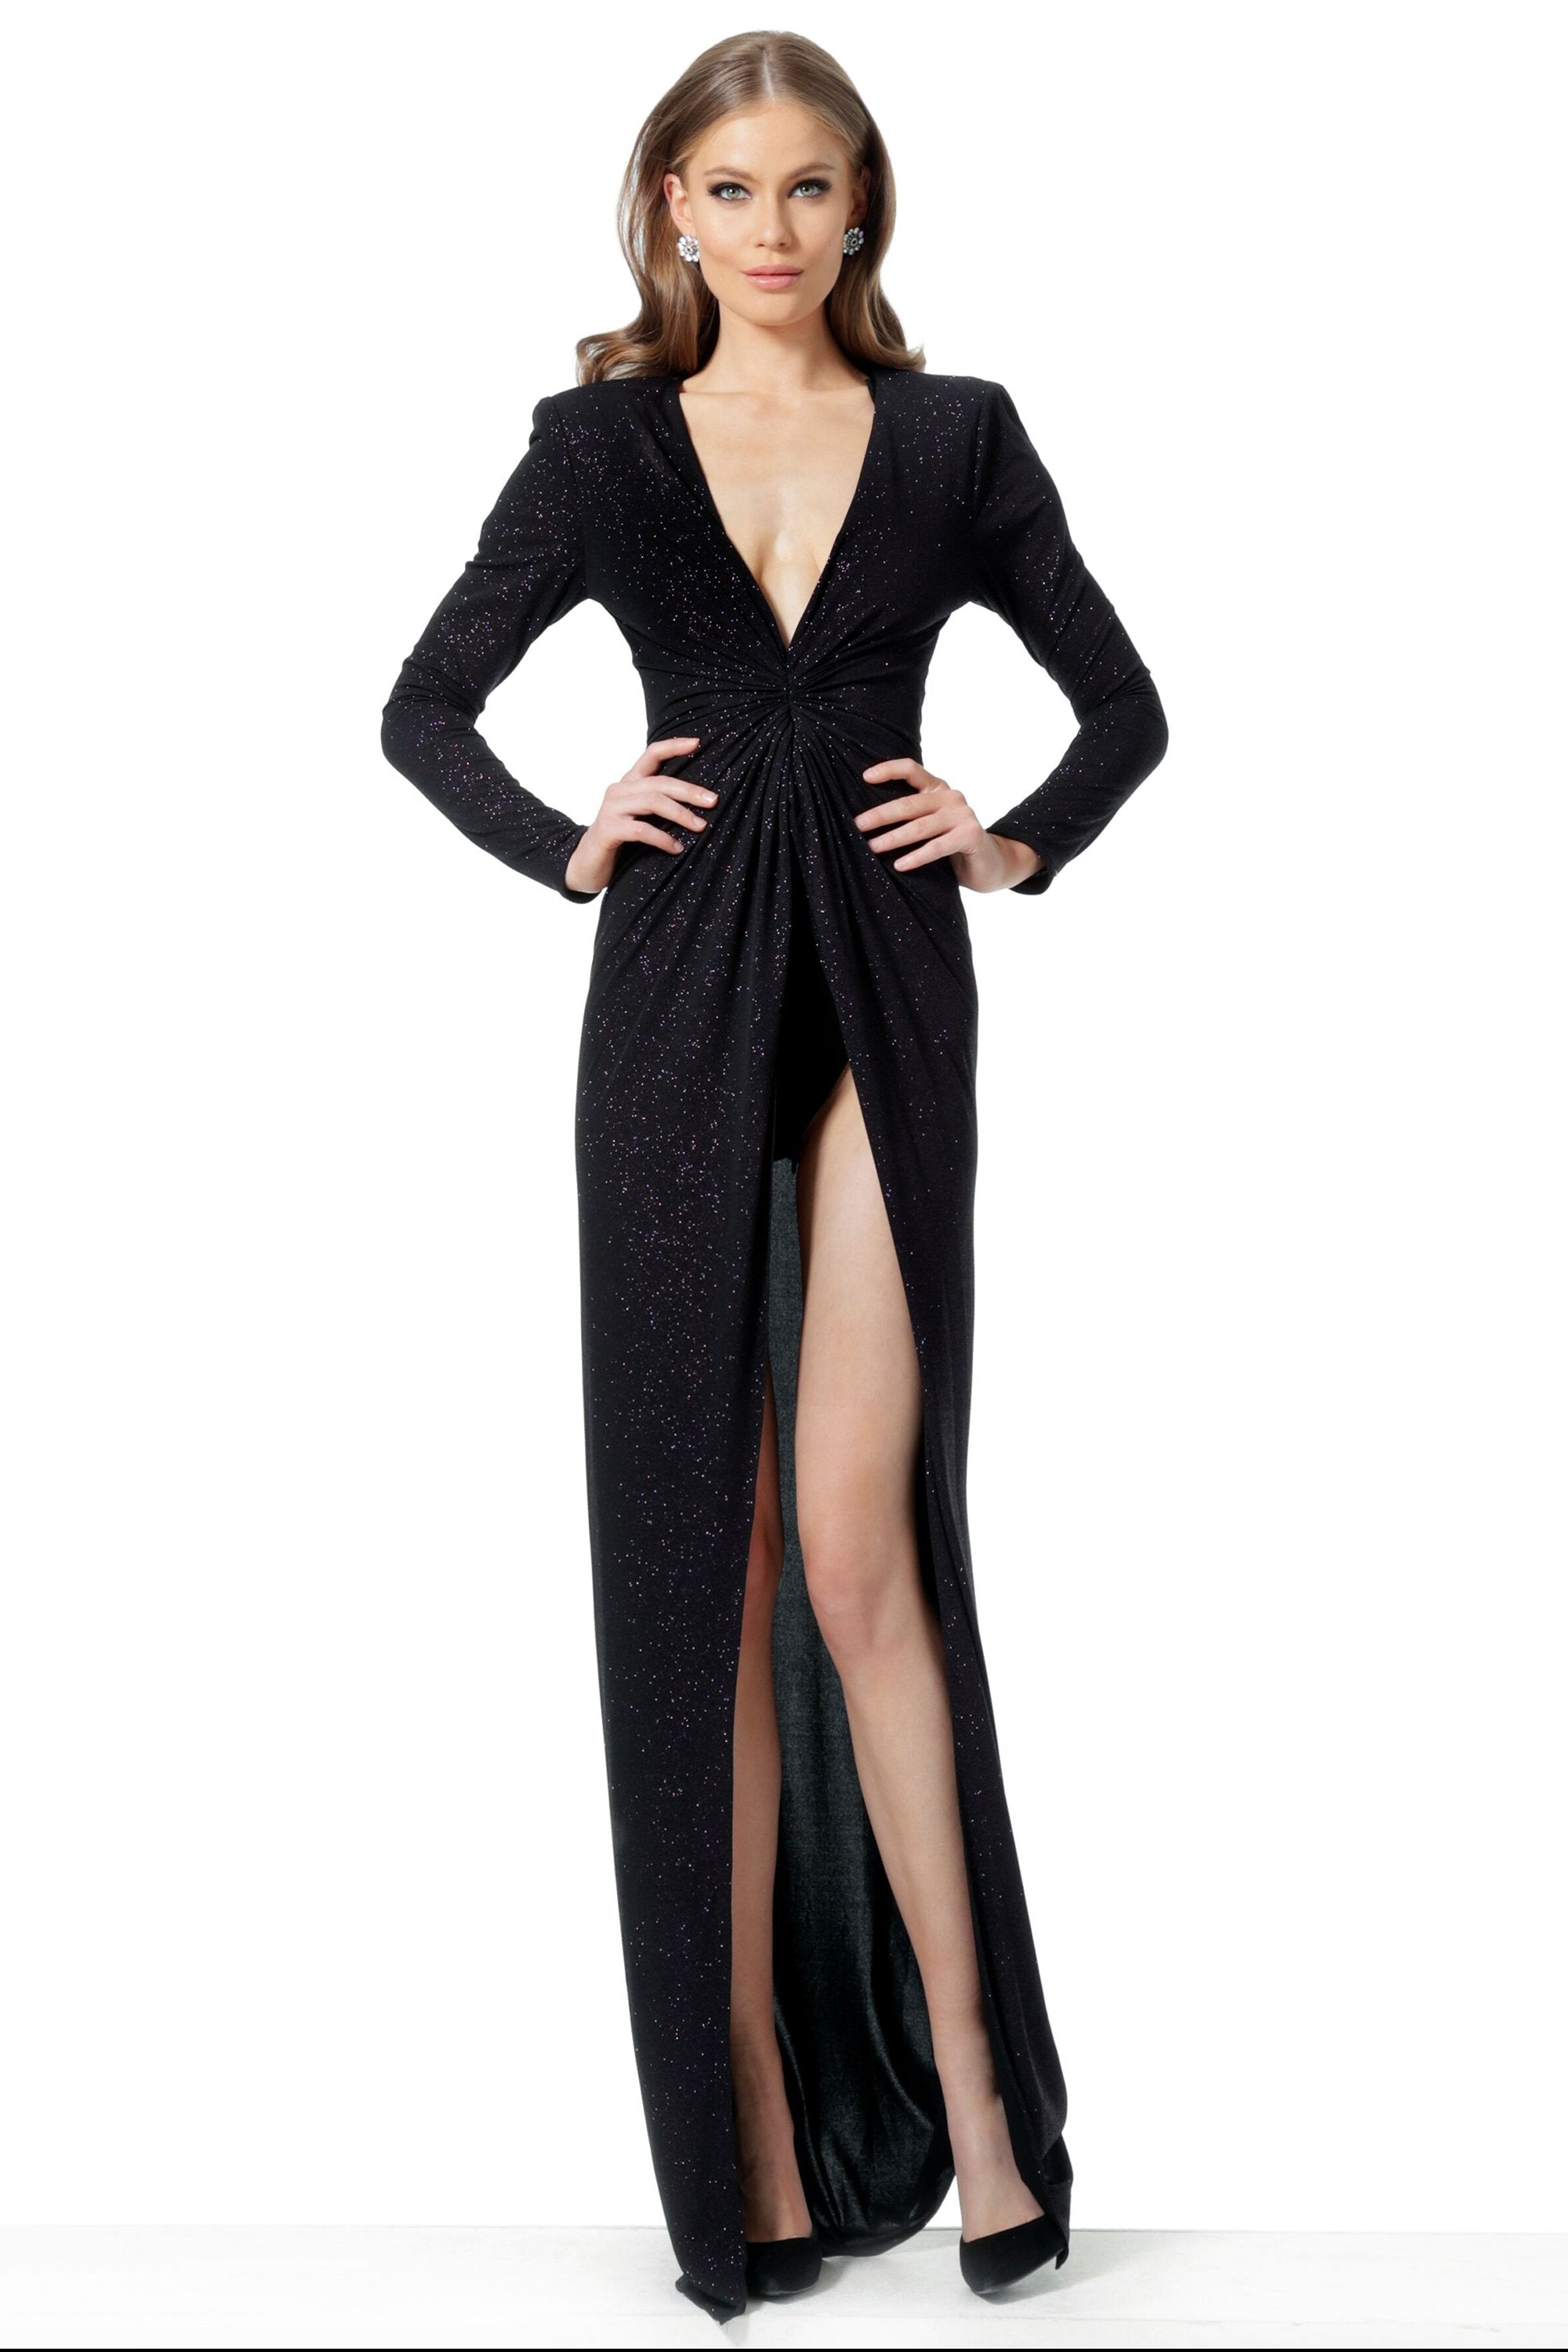 Jovani - 1708 Long Sleeve Deep V-neck Sheath Dress With Slit In Black and Pink